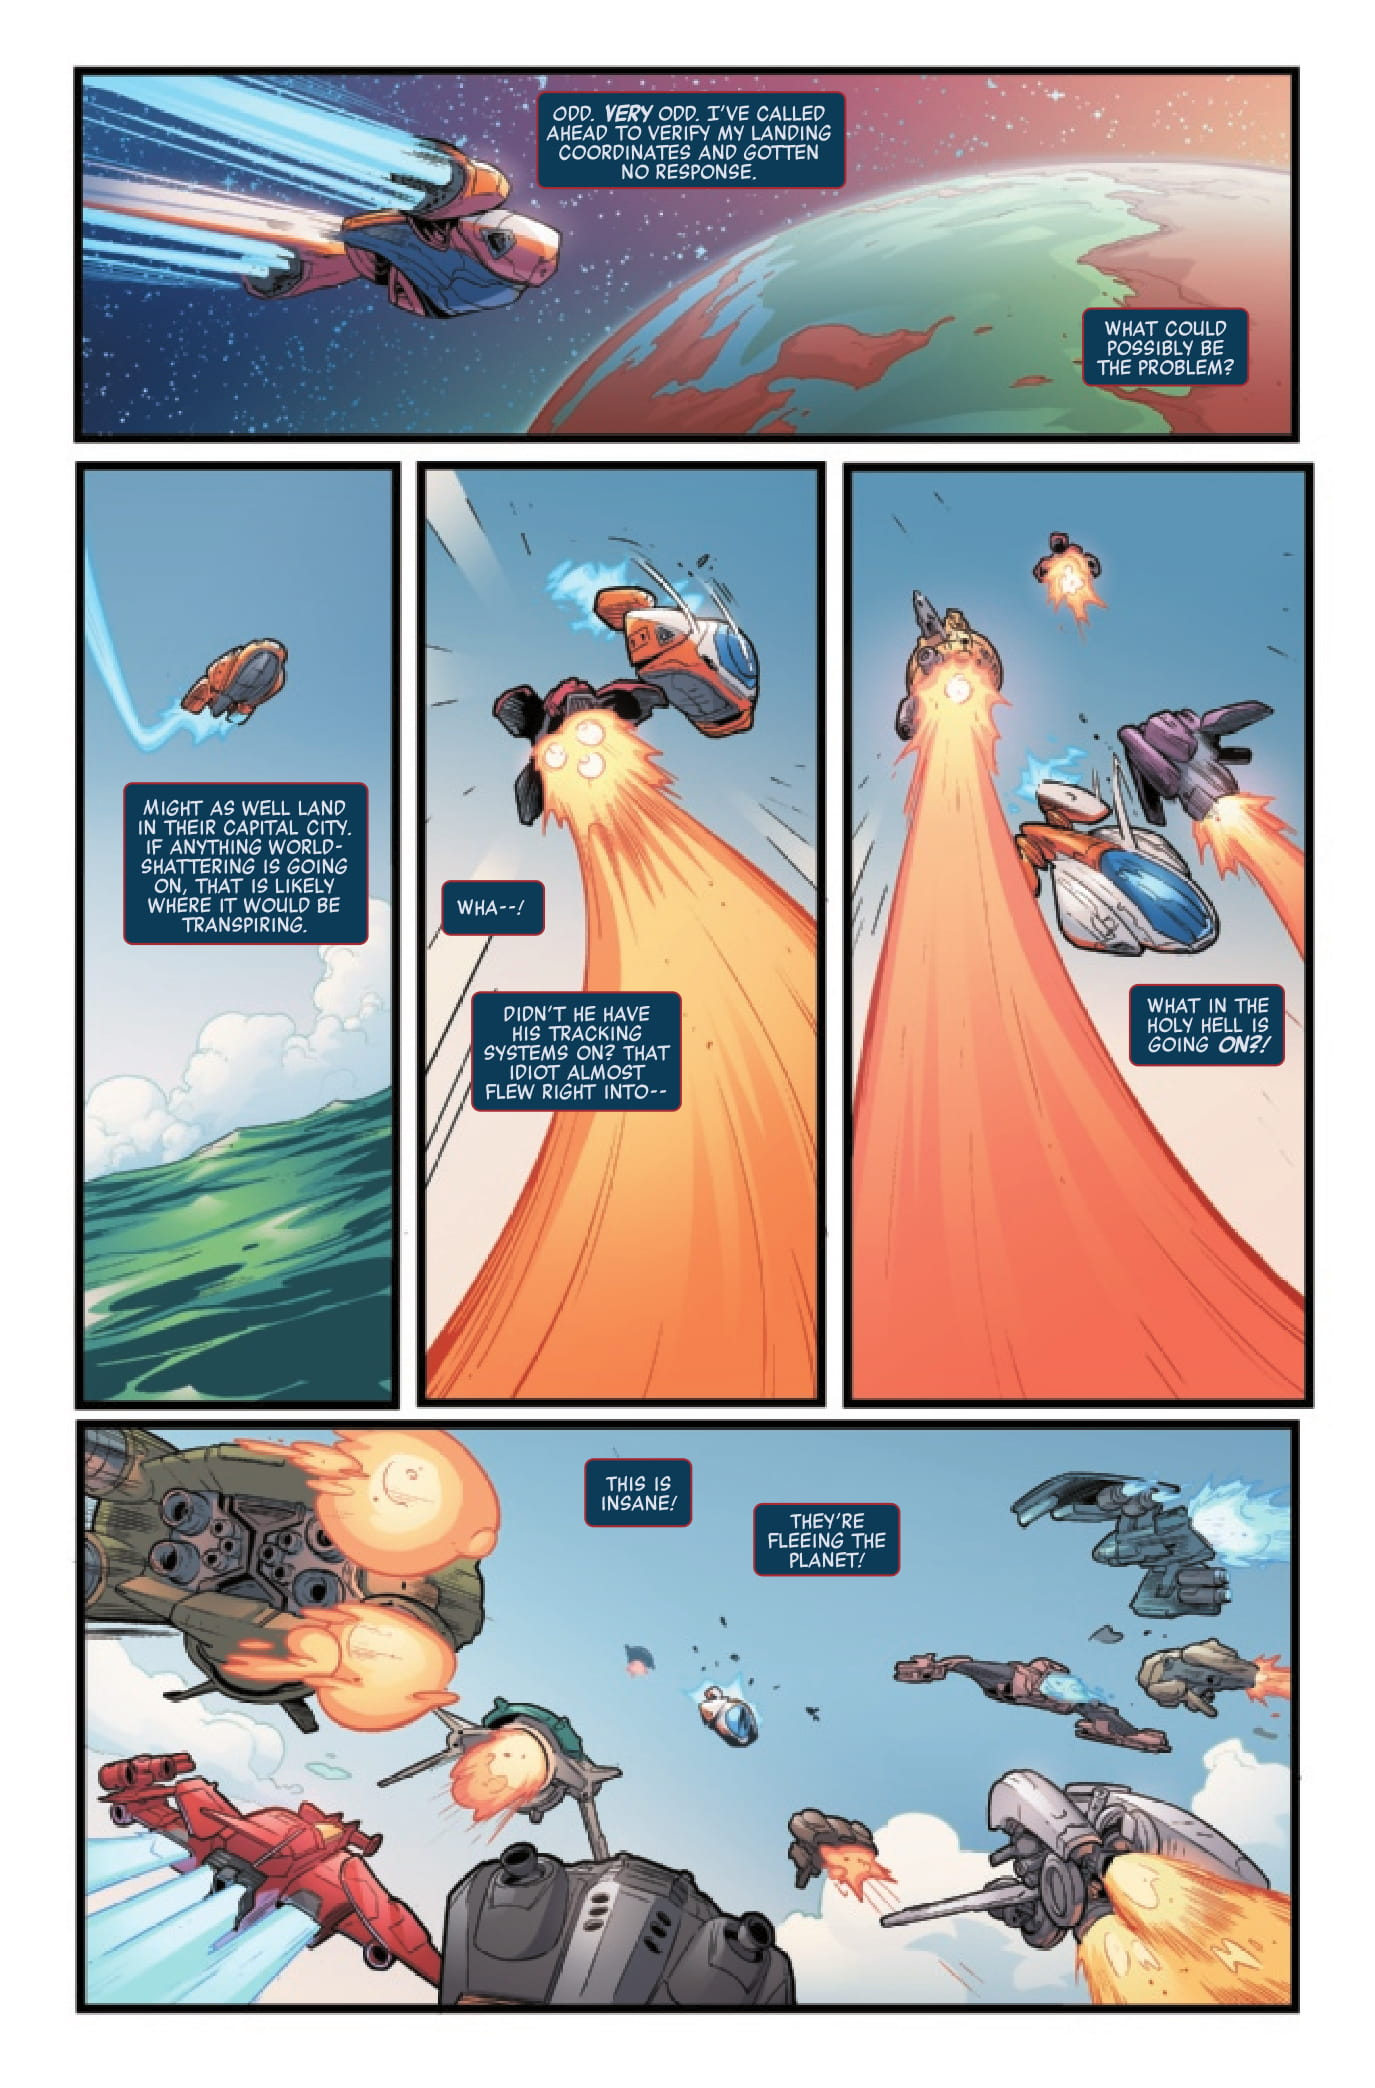 Silver Surfer: The Prodigal Sun #1 preview